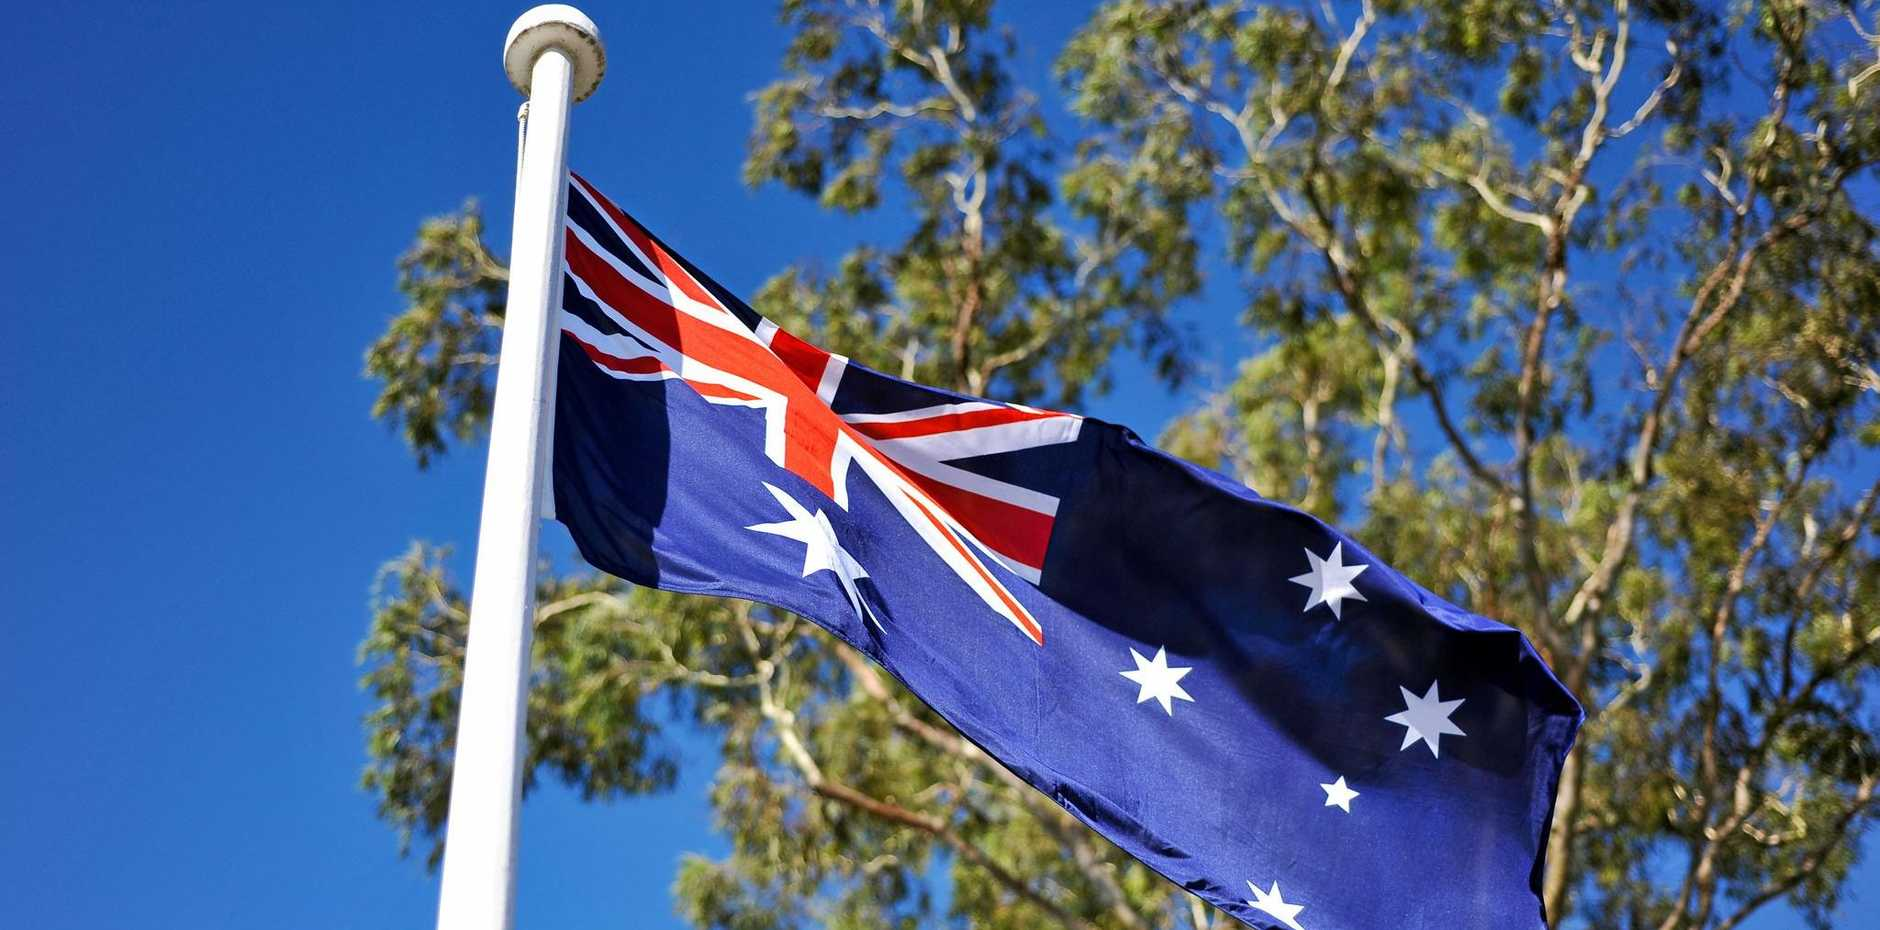 OTHER Award winners have been announced at the Australia Day celebrations at Glengallan Homestead.